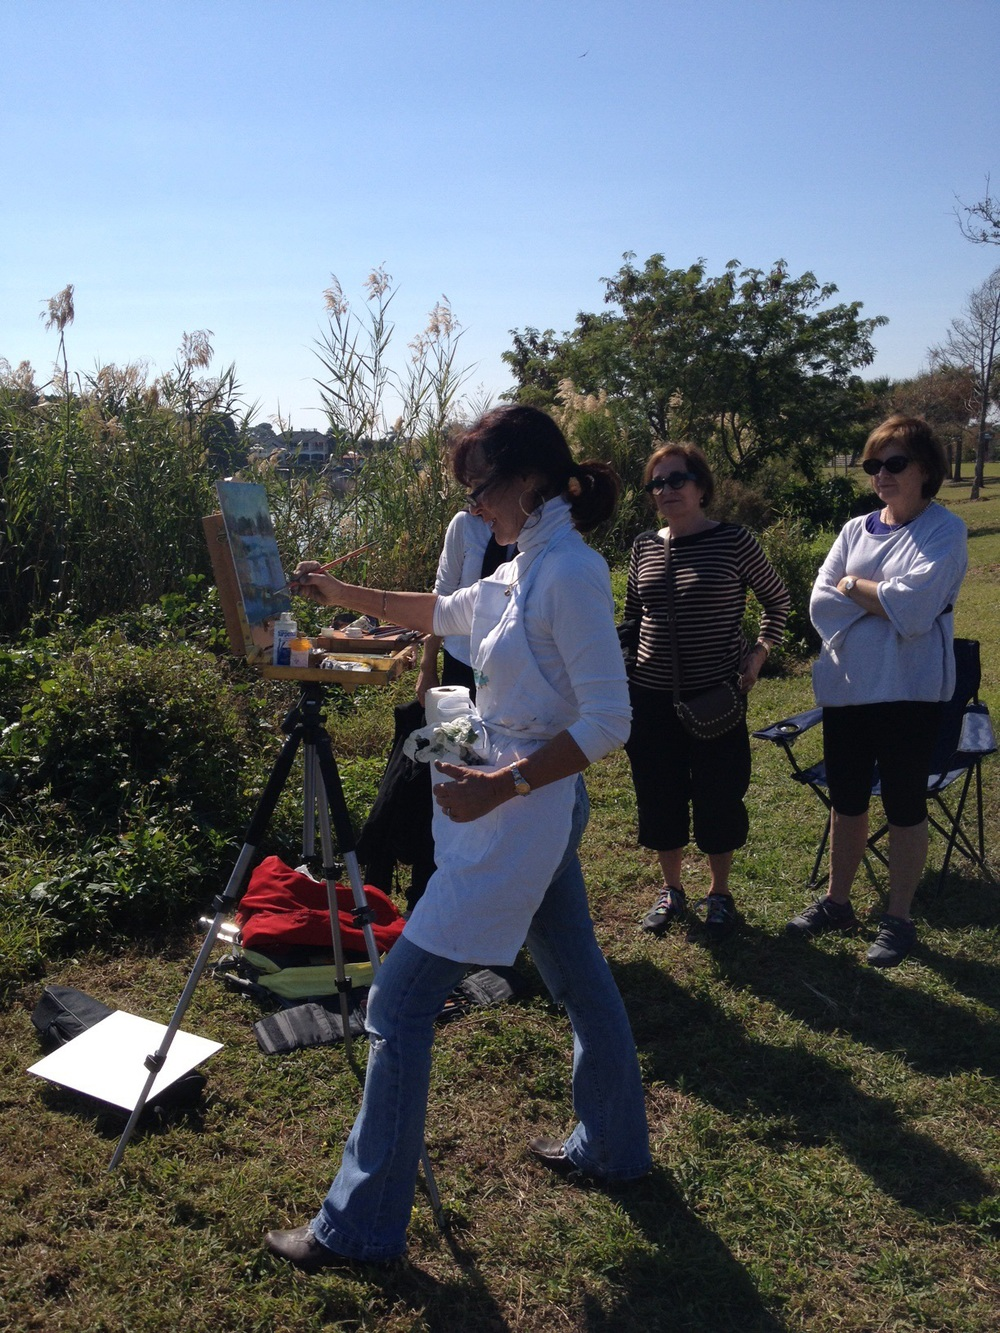 Giving a demo at Lake Ida. Students with comfortable clothes!